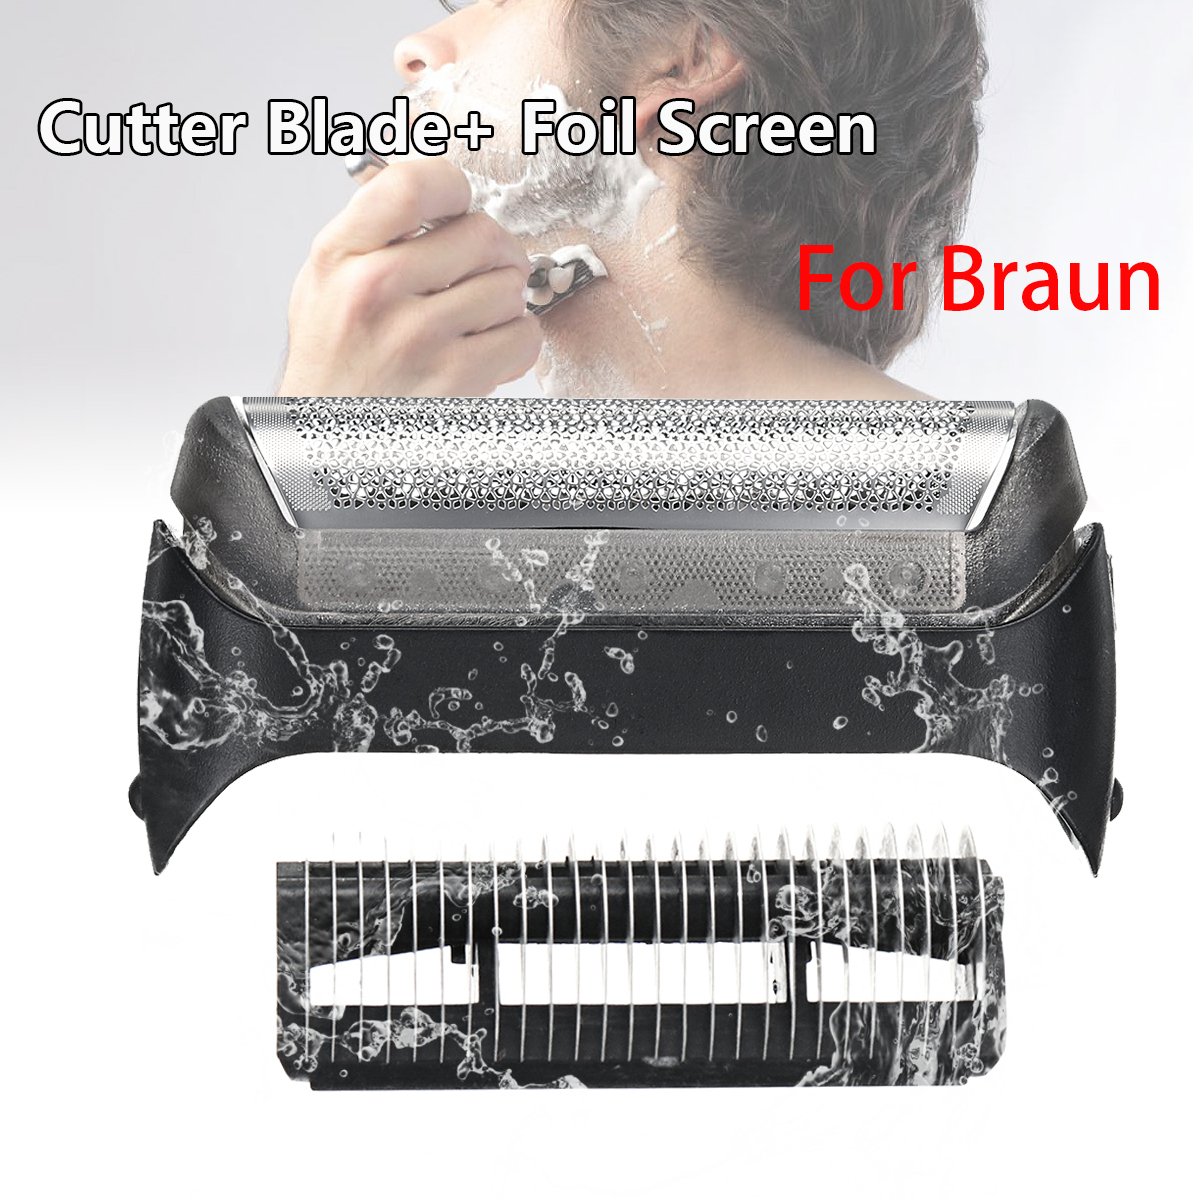 Shaver Blade Cutter Head Replacement Foil For Braun 10B Series 190 180 170 1735